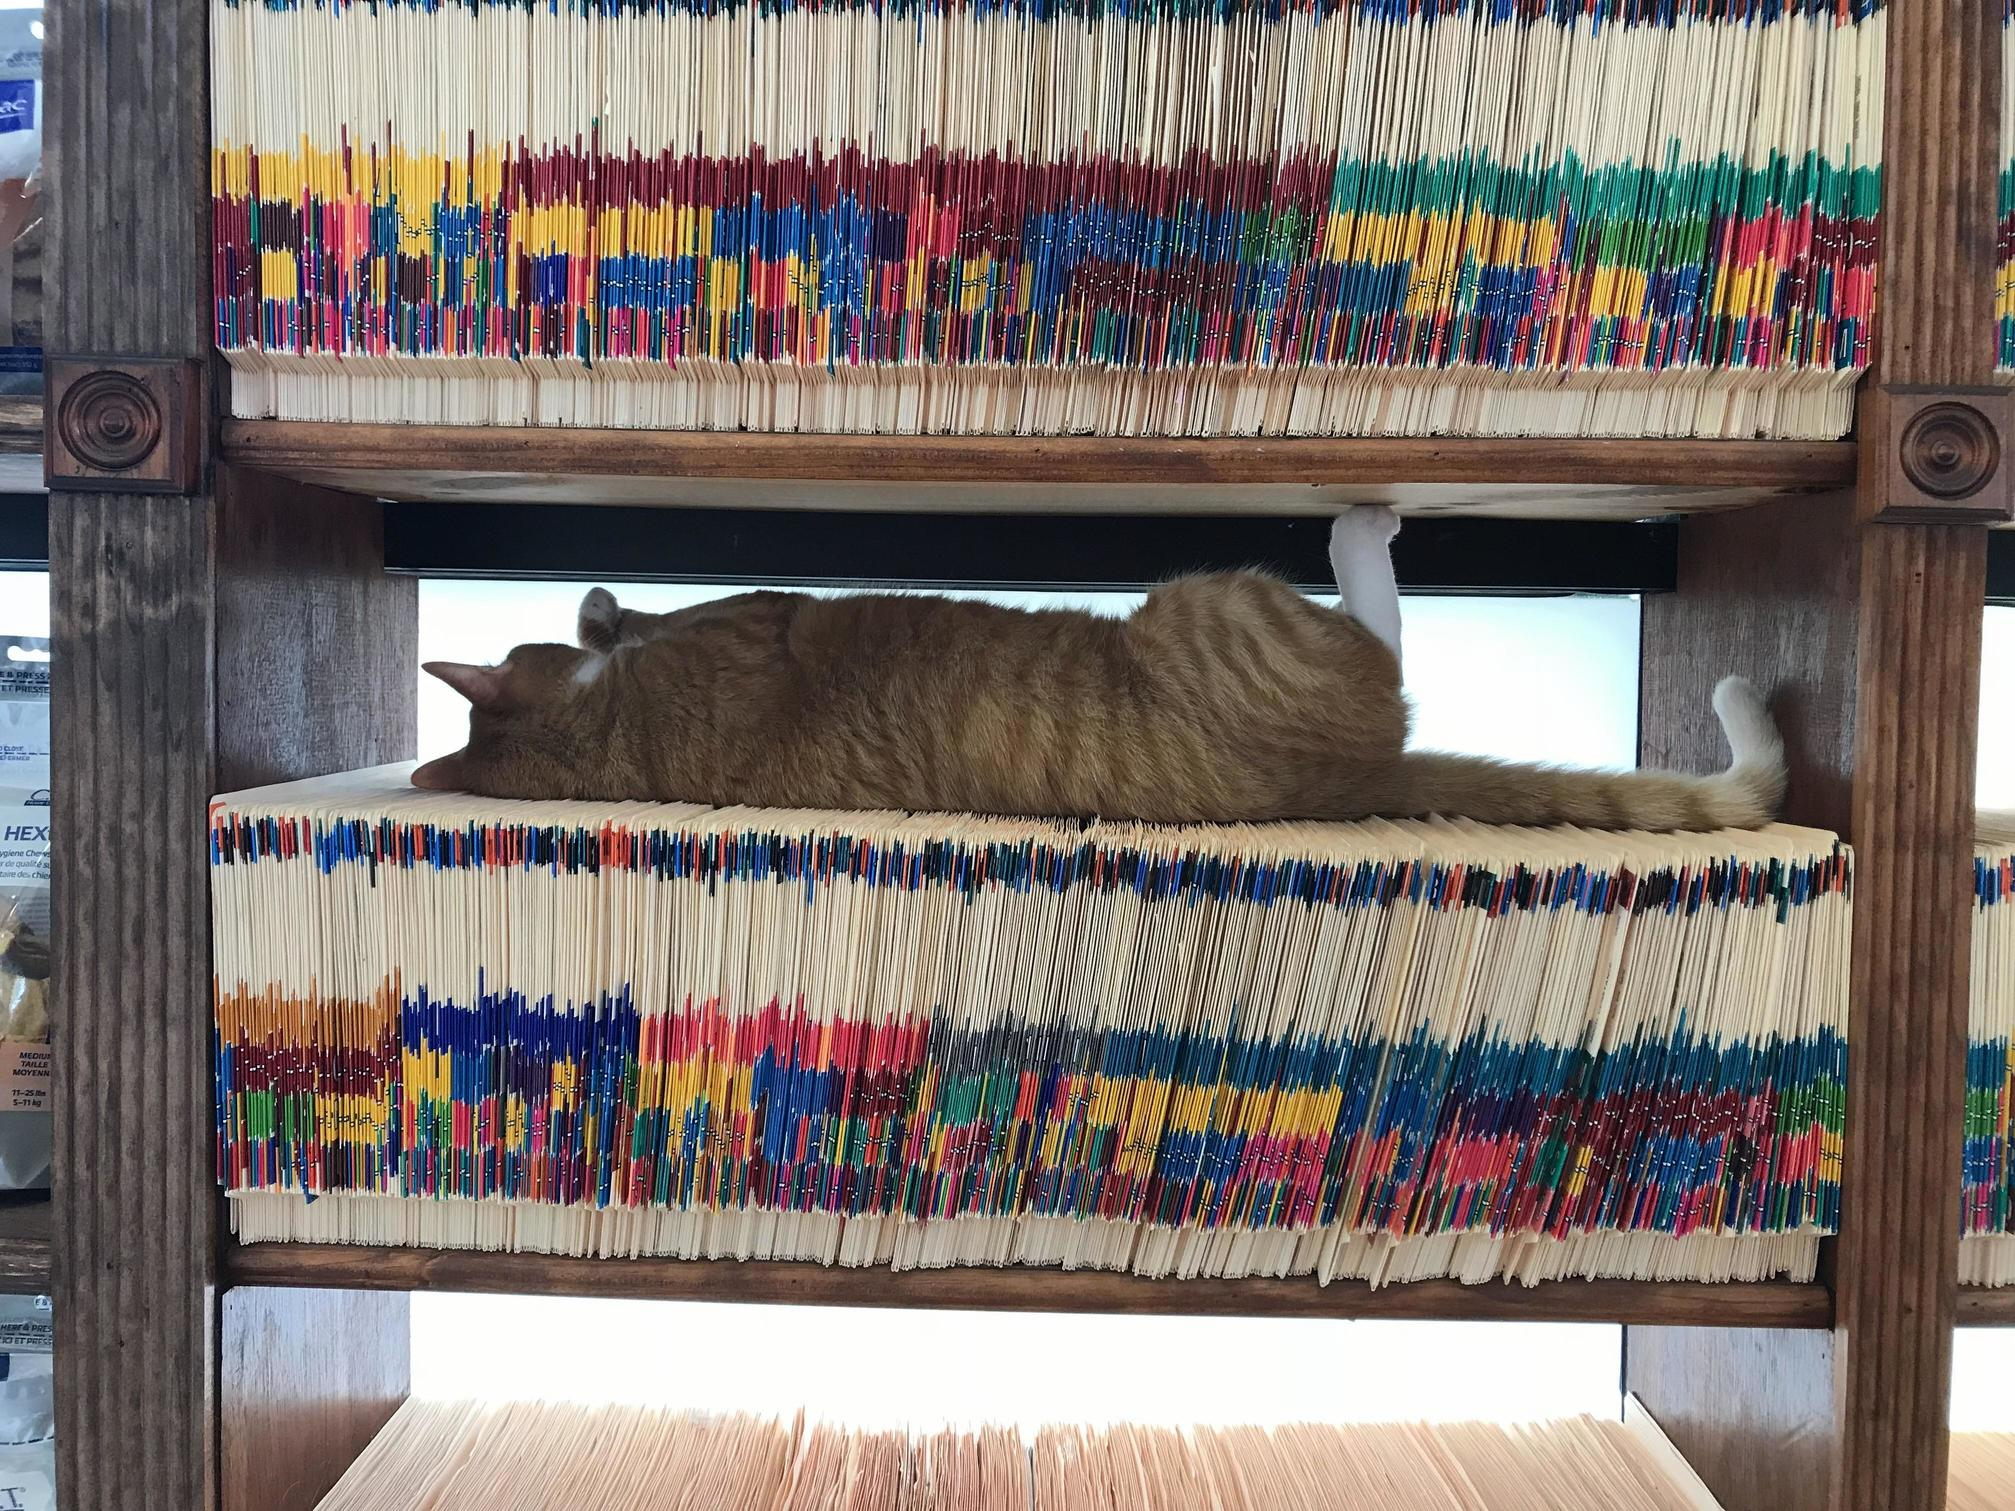 Roger the clinic cat napping on files.